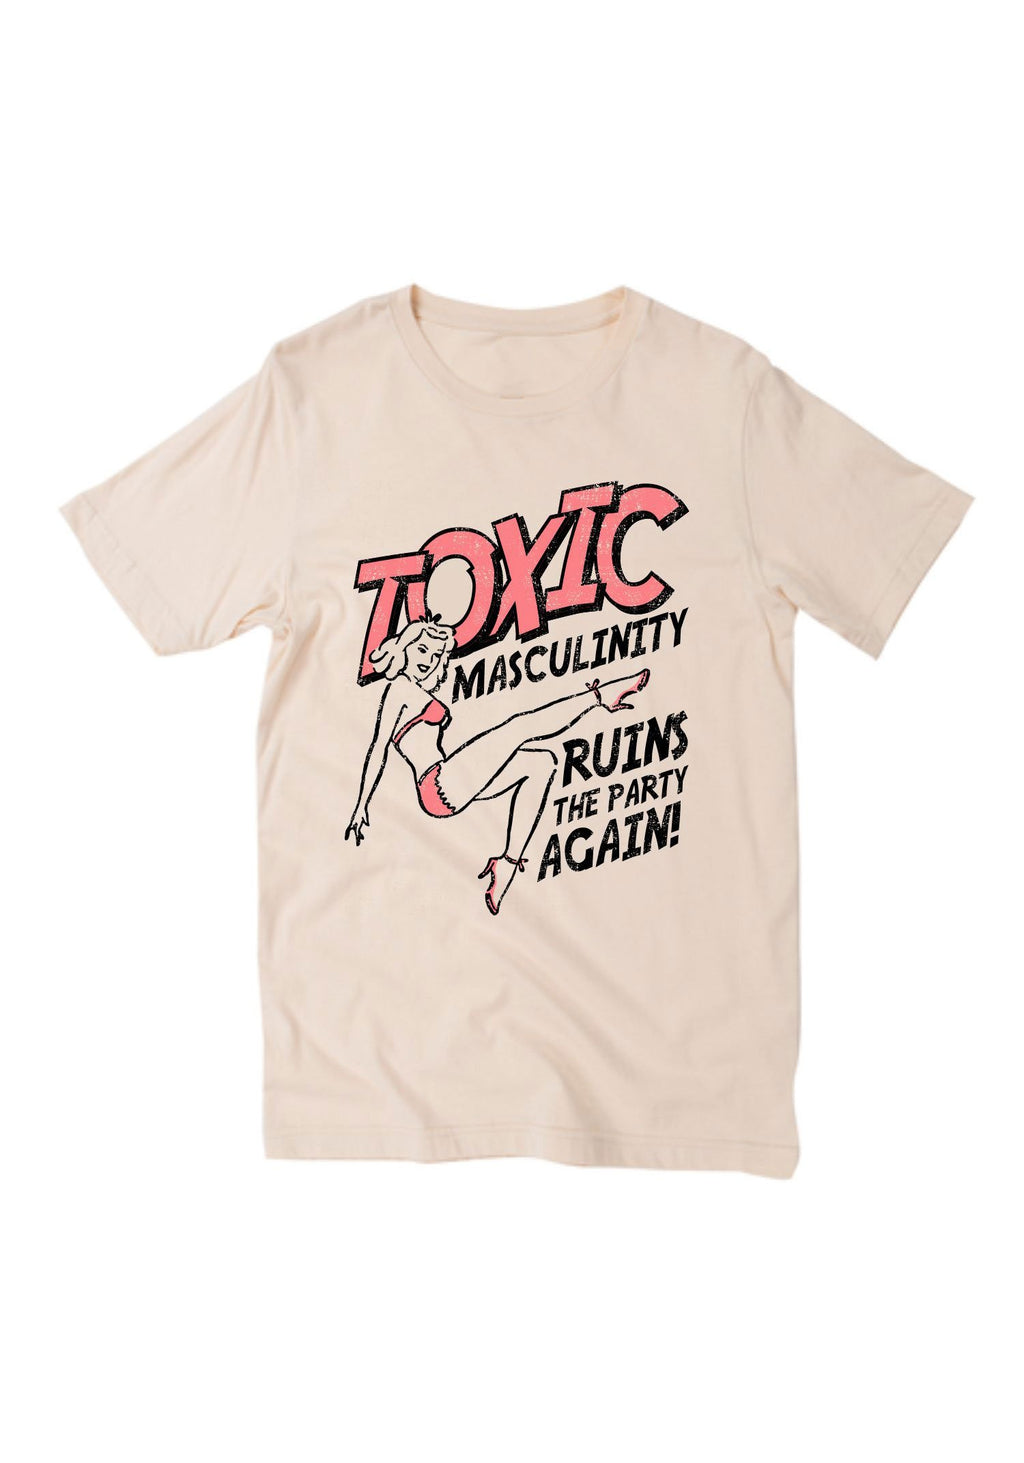 Toxic Masculinity Tee / womens graphic tshirts / my favorite murderino shirt stay sexy / ruins the party again murder true crime t shirt